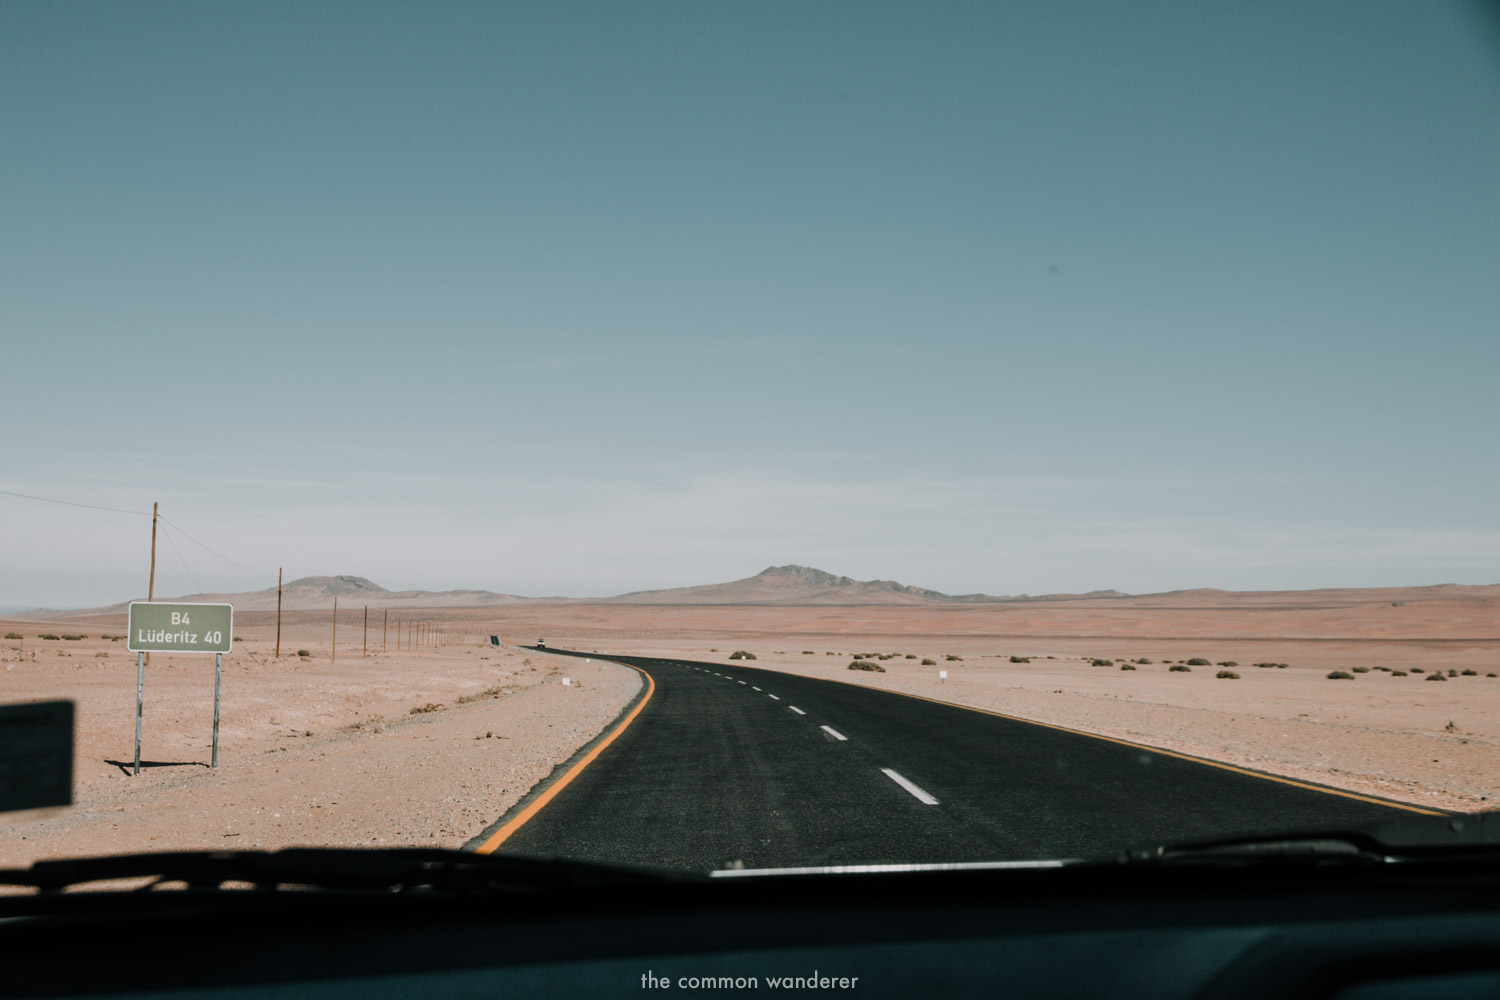 Driving on the long road to Luderitz, Namibia